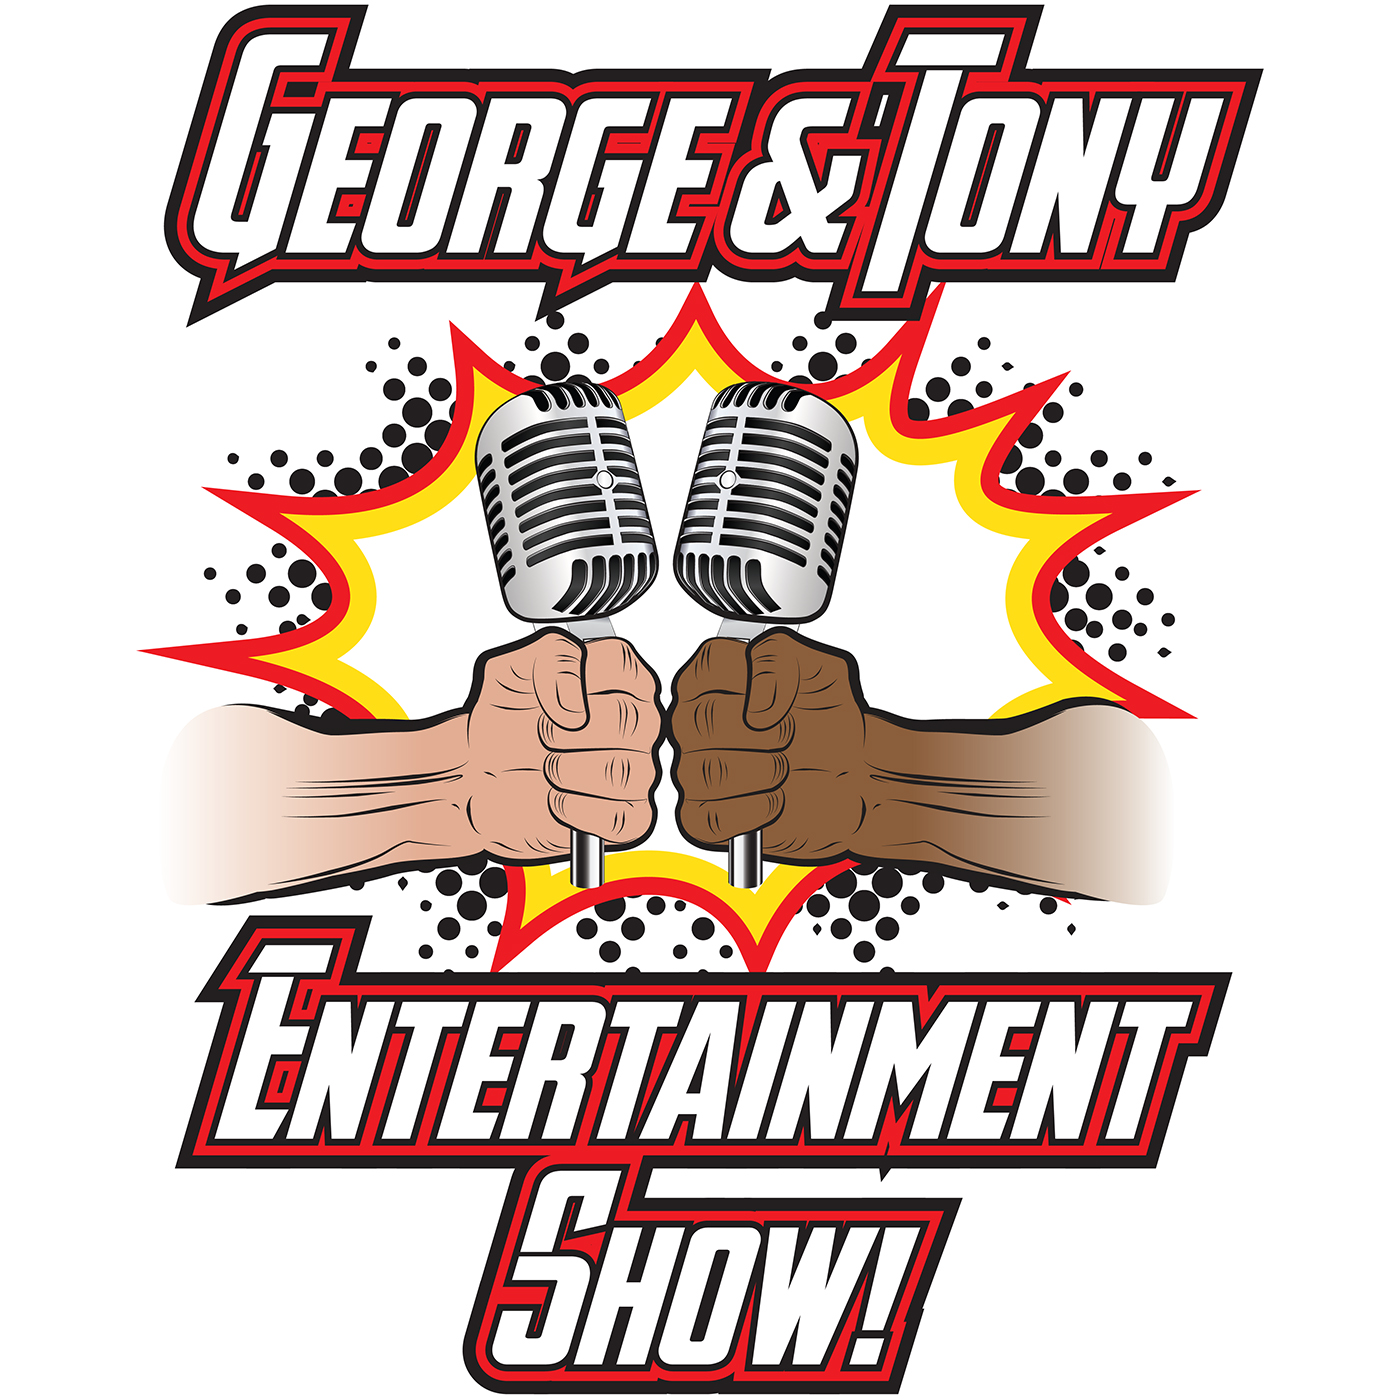 George and Tony Entertainment Show #58